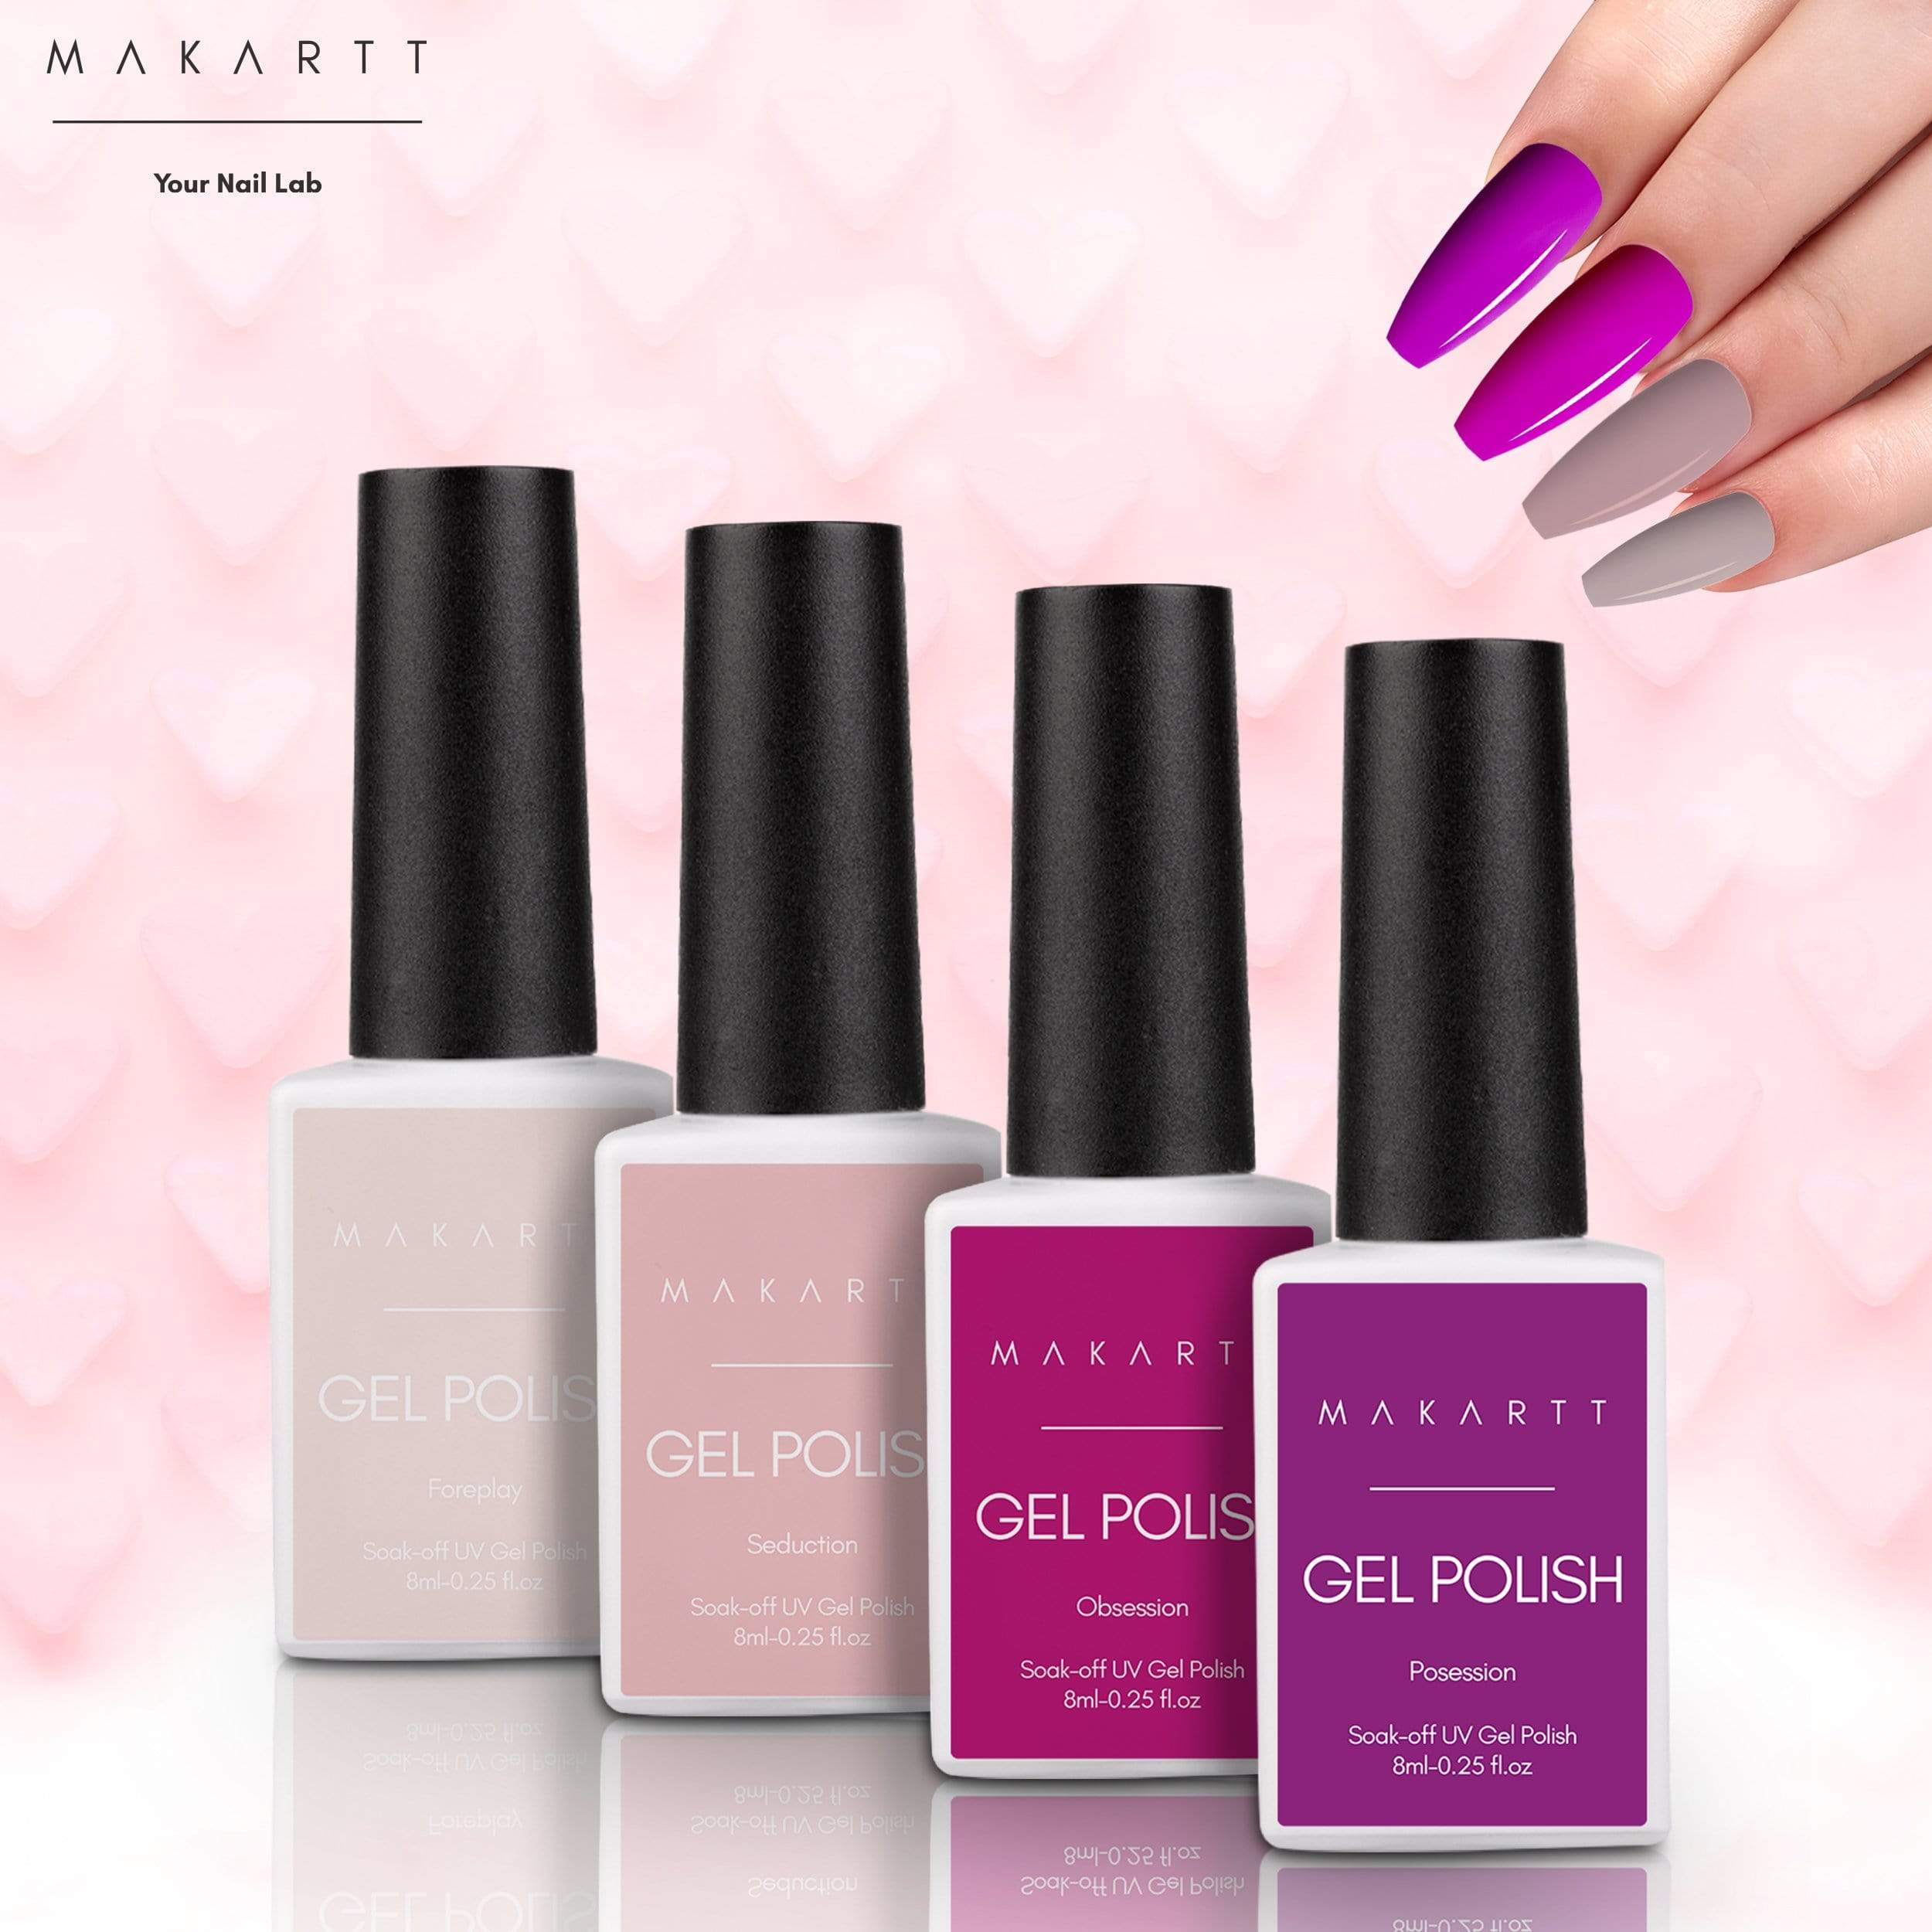 Hooked On Love 6 Color Valentine's Day Limited Edition Gel Polish Set